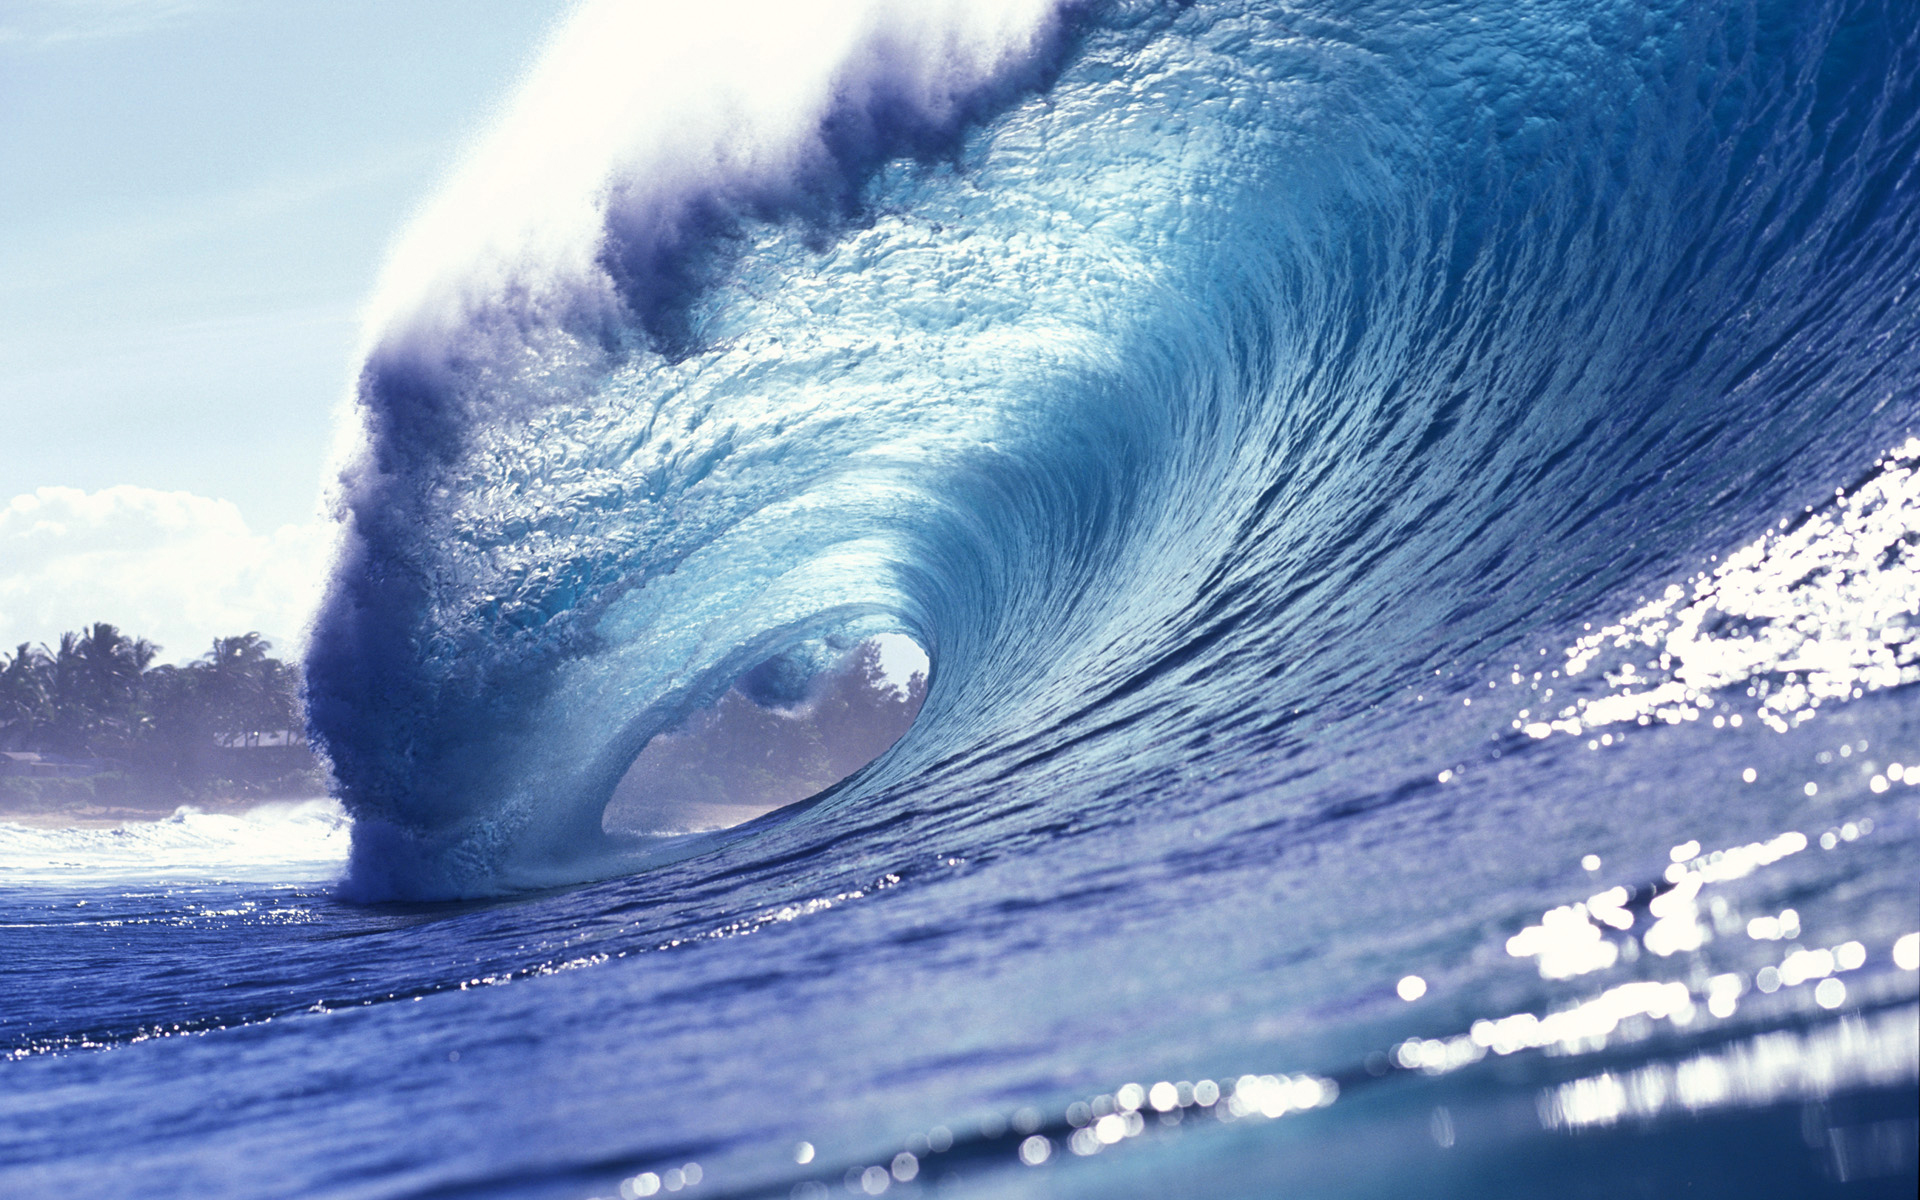 surfing wave wallpapers - 1920x1200